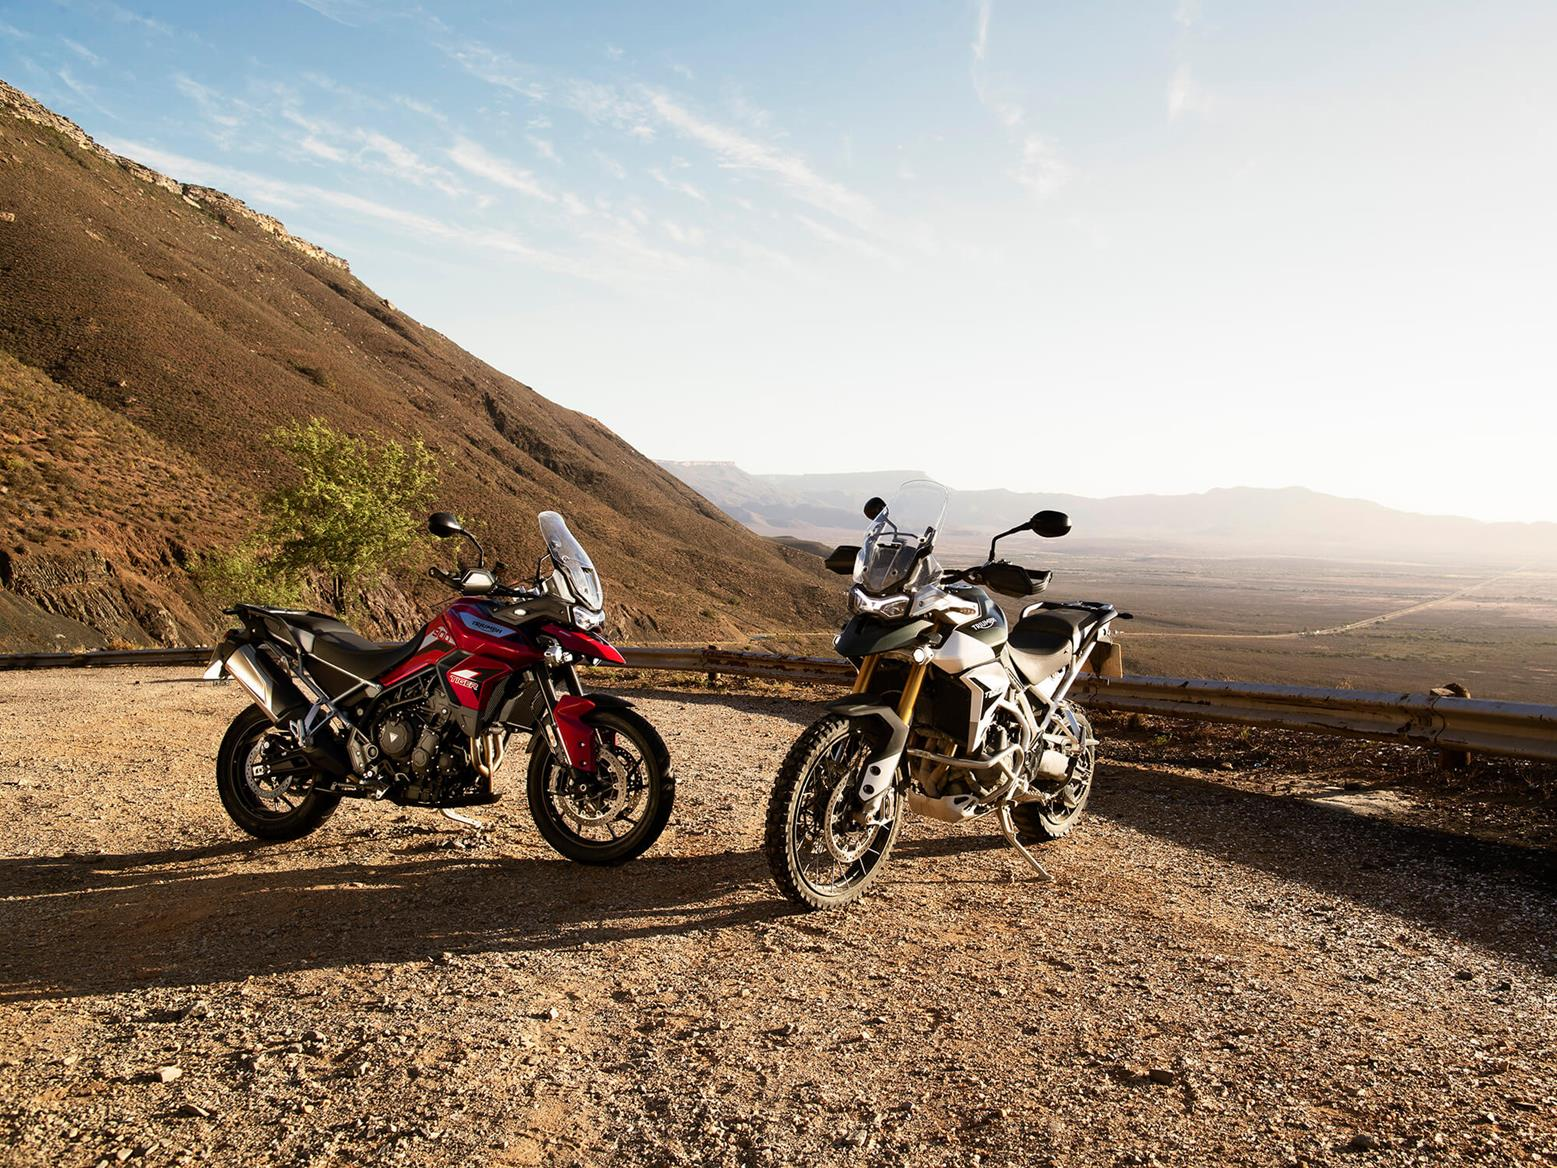 Triumph Tiger 900 GT Pro and Rally Pro sat together